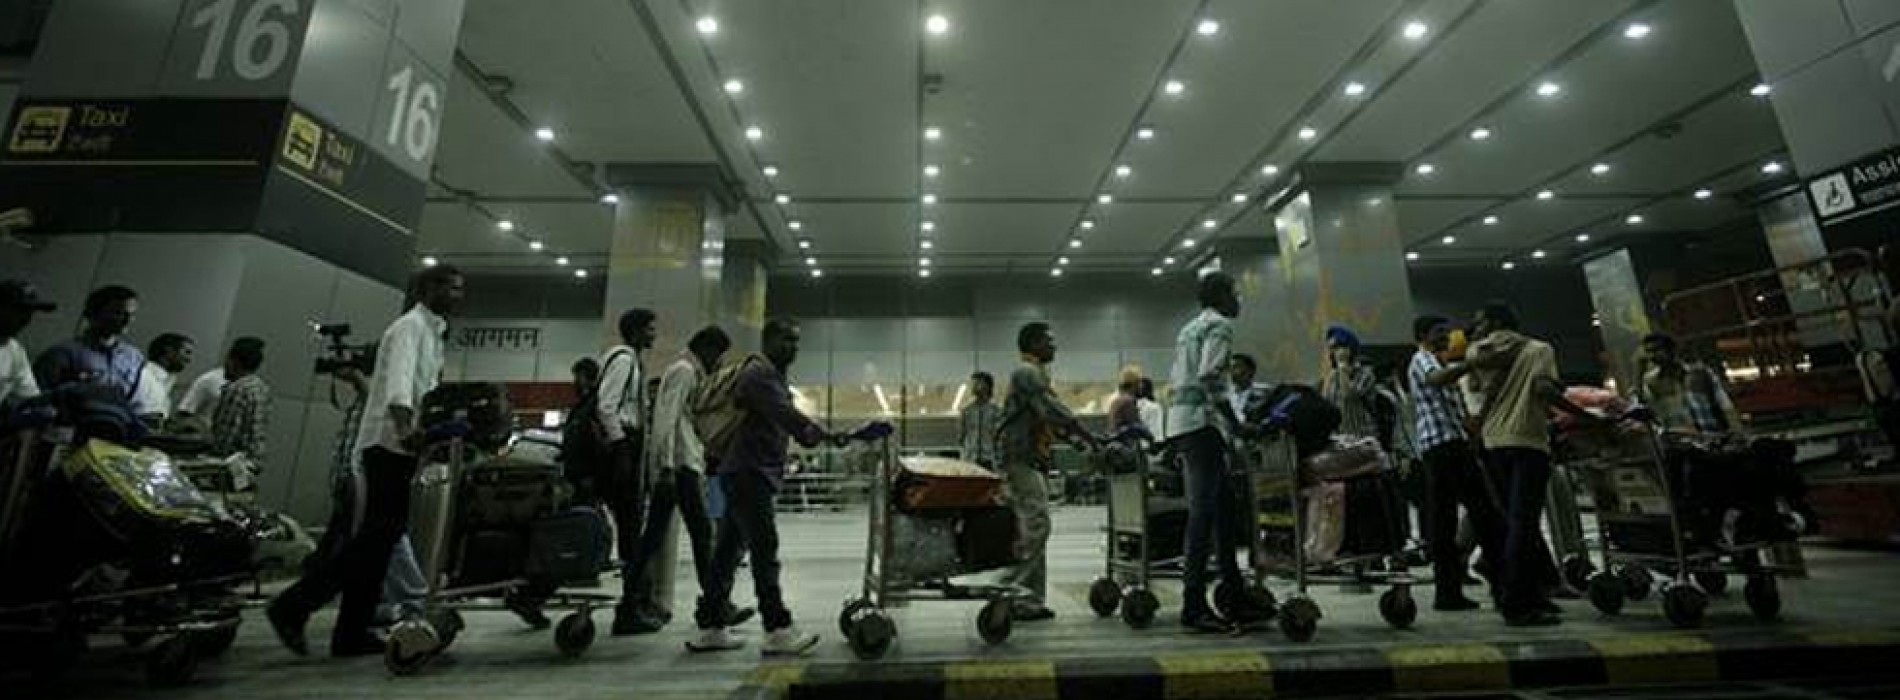 PSF may go up to fill up gap of airports security cost